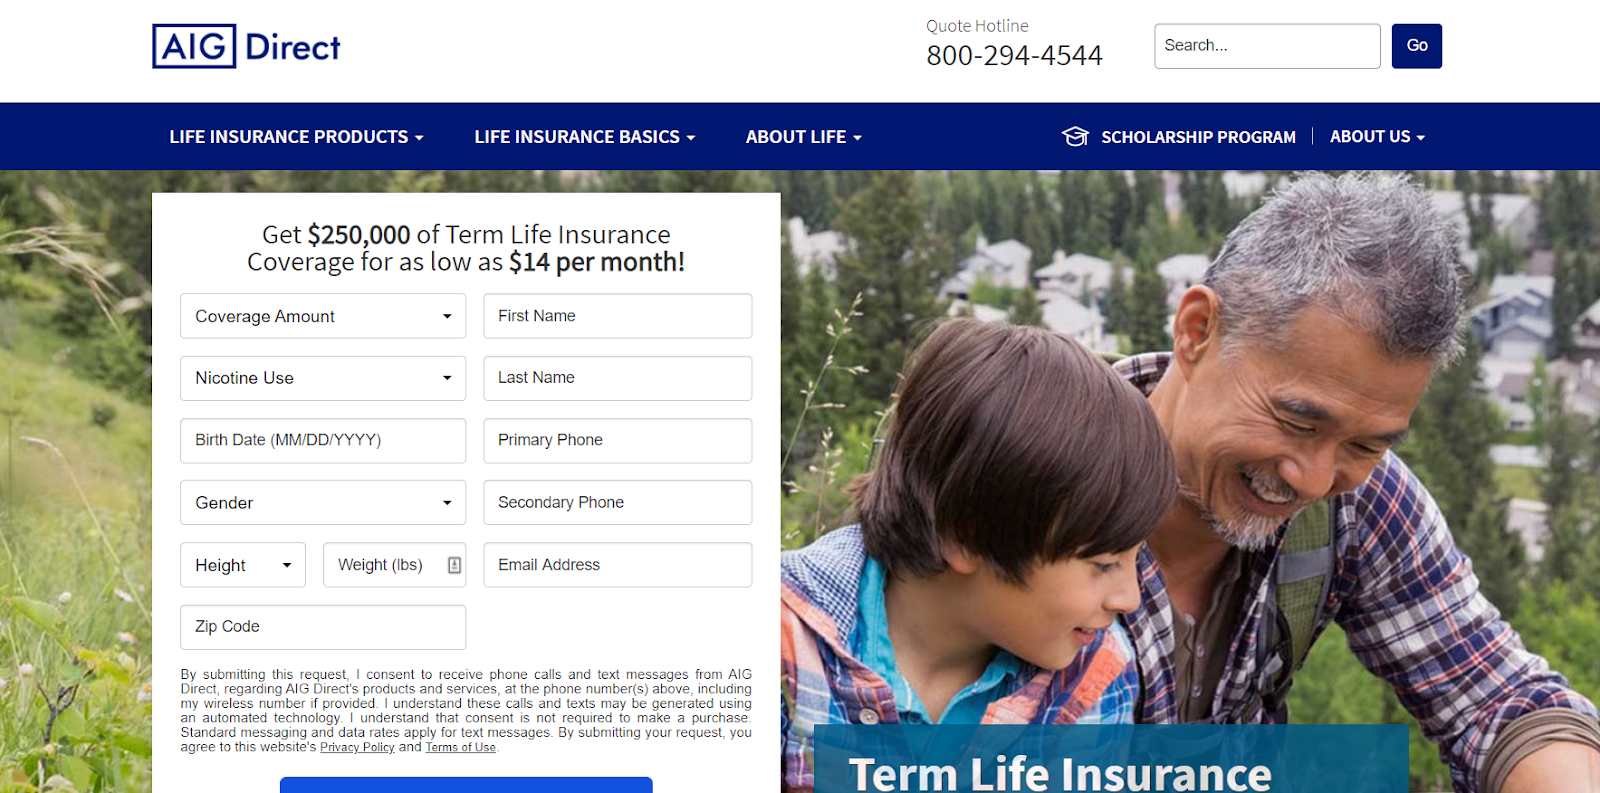 AIG Review: Plenty of Life Insurance Options means there is something for everyone - personal information